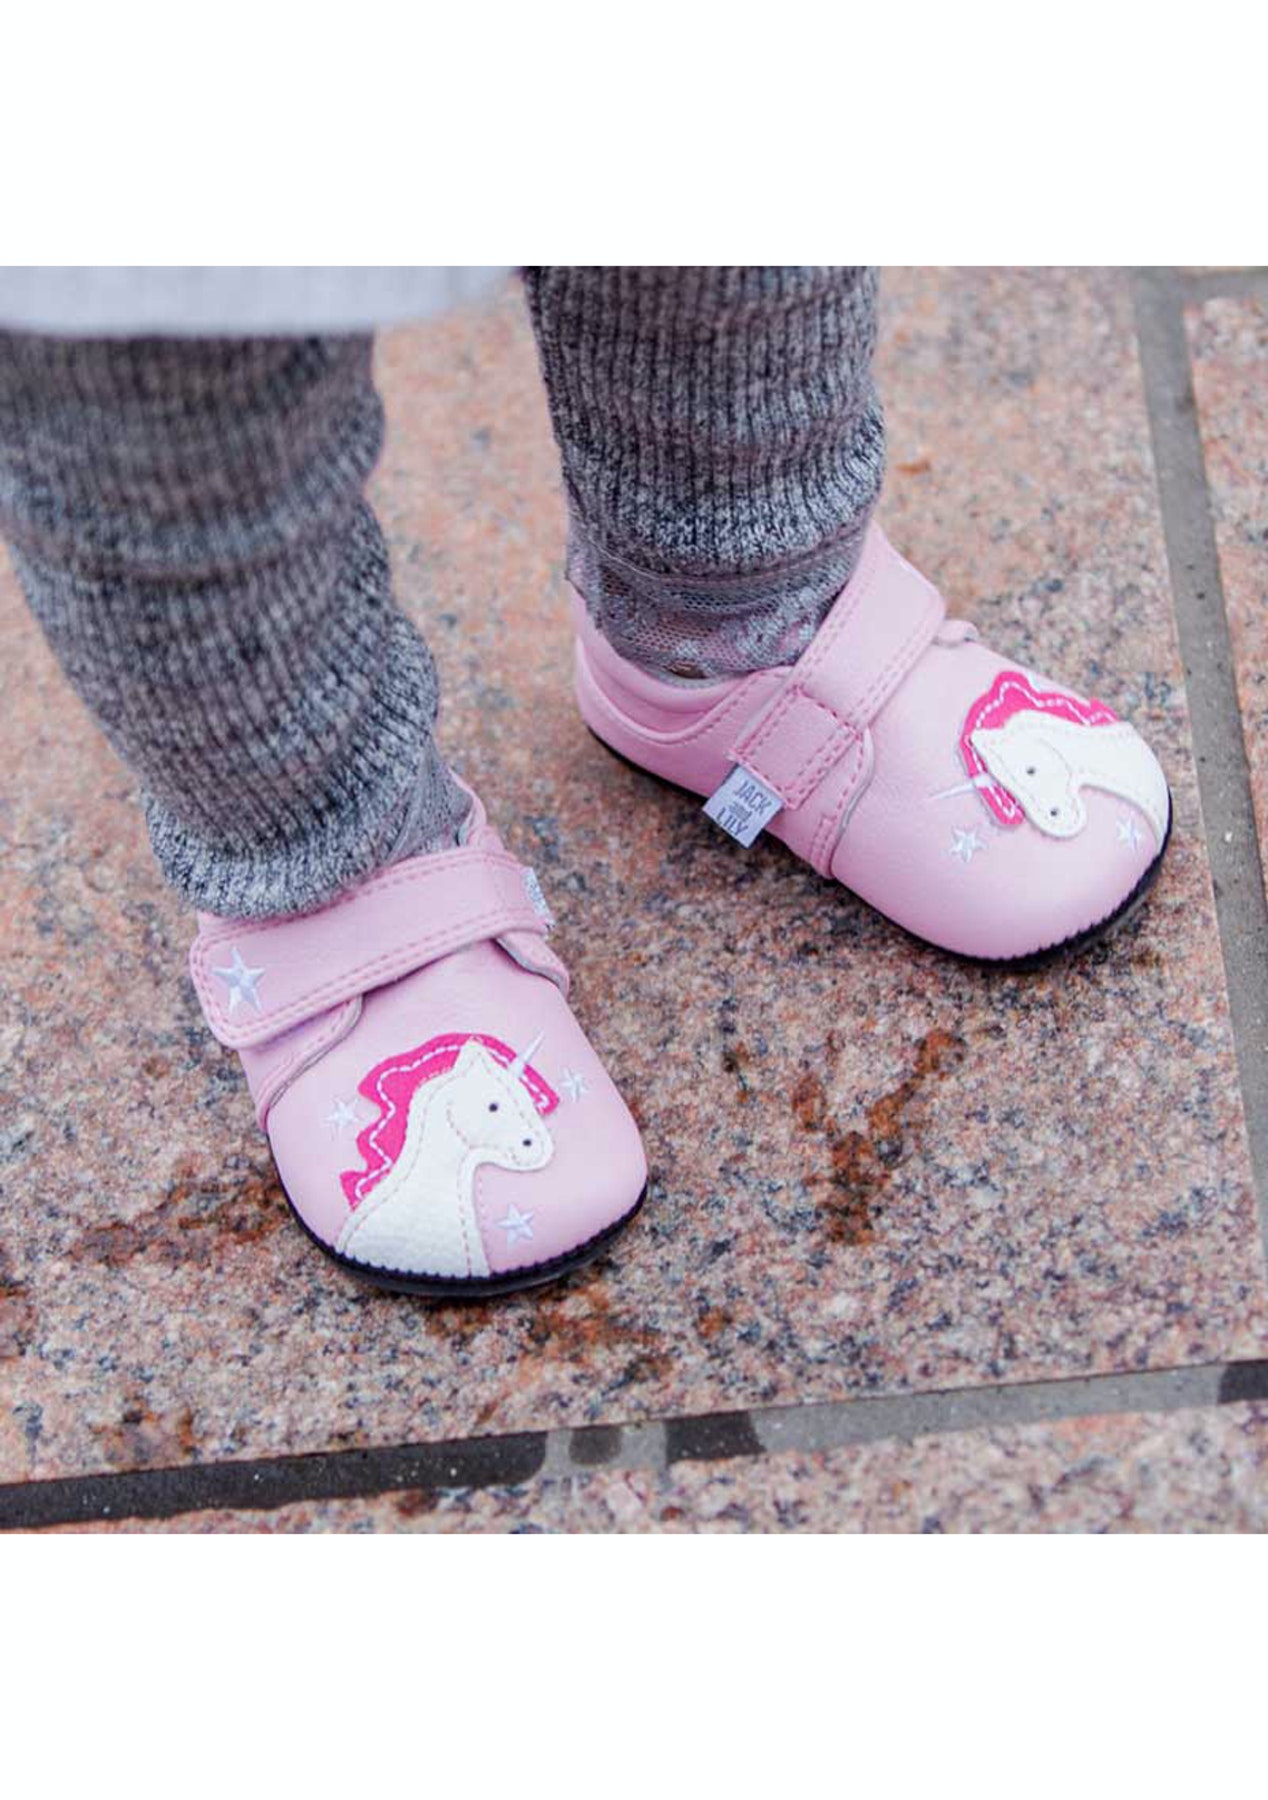 48ea148dd8bb Jack   Lily - Dixie Unicorn Pink - Genuine Leather - Jack   Lilly Kids Shoes    more - Onceit